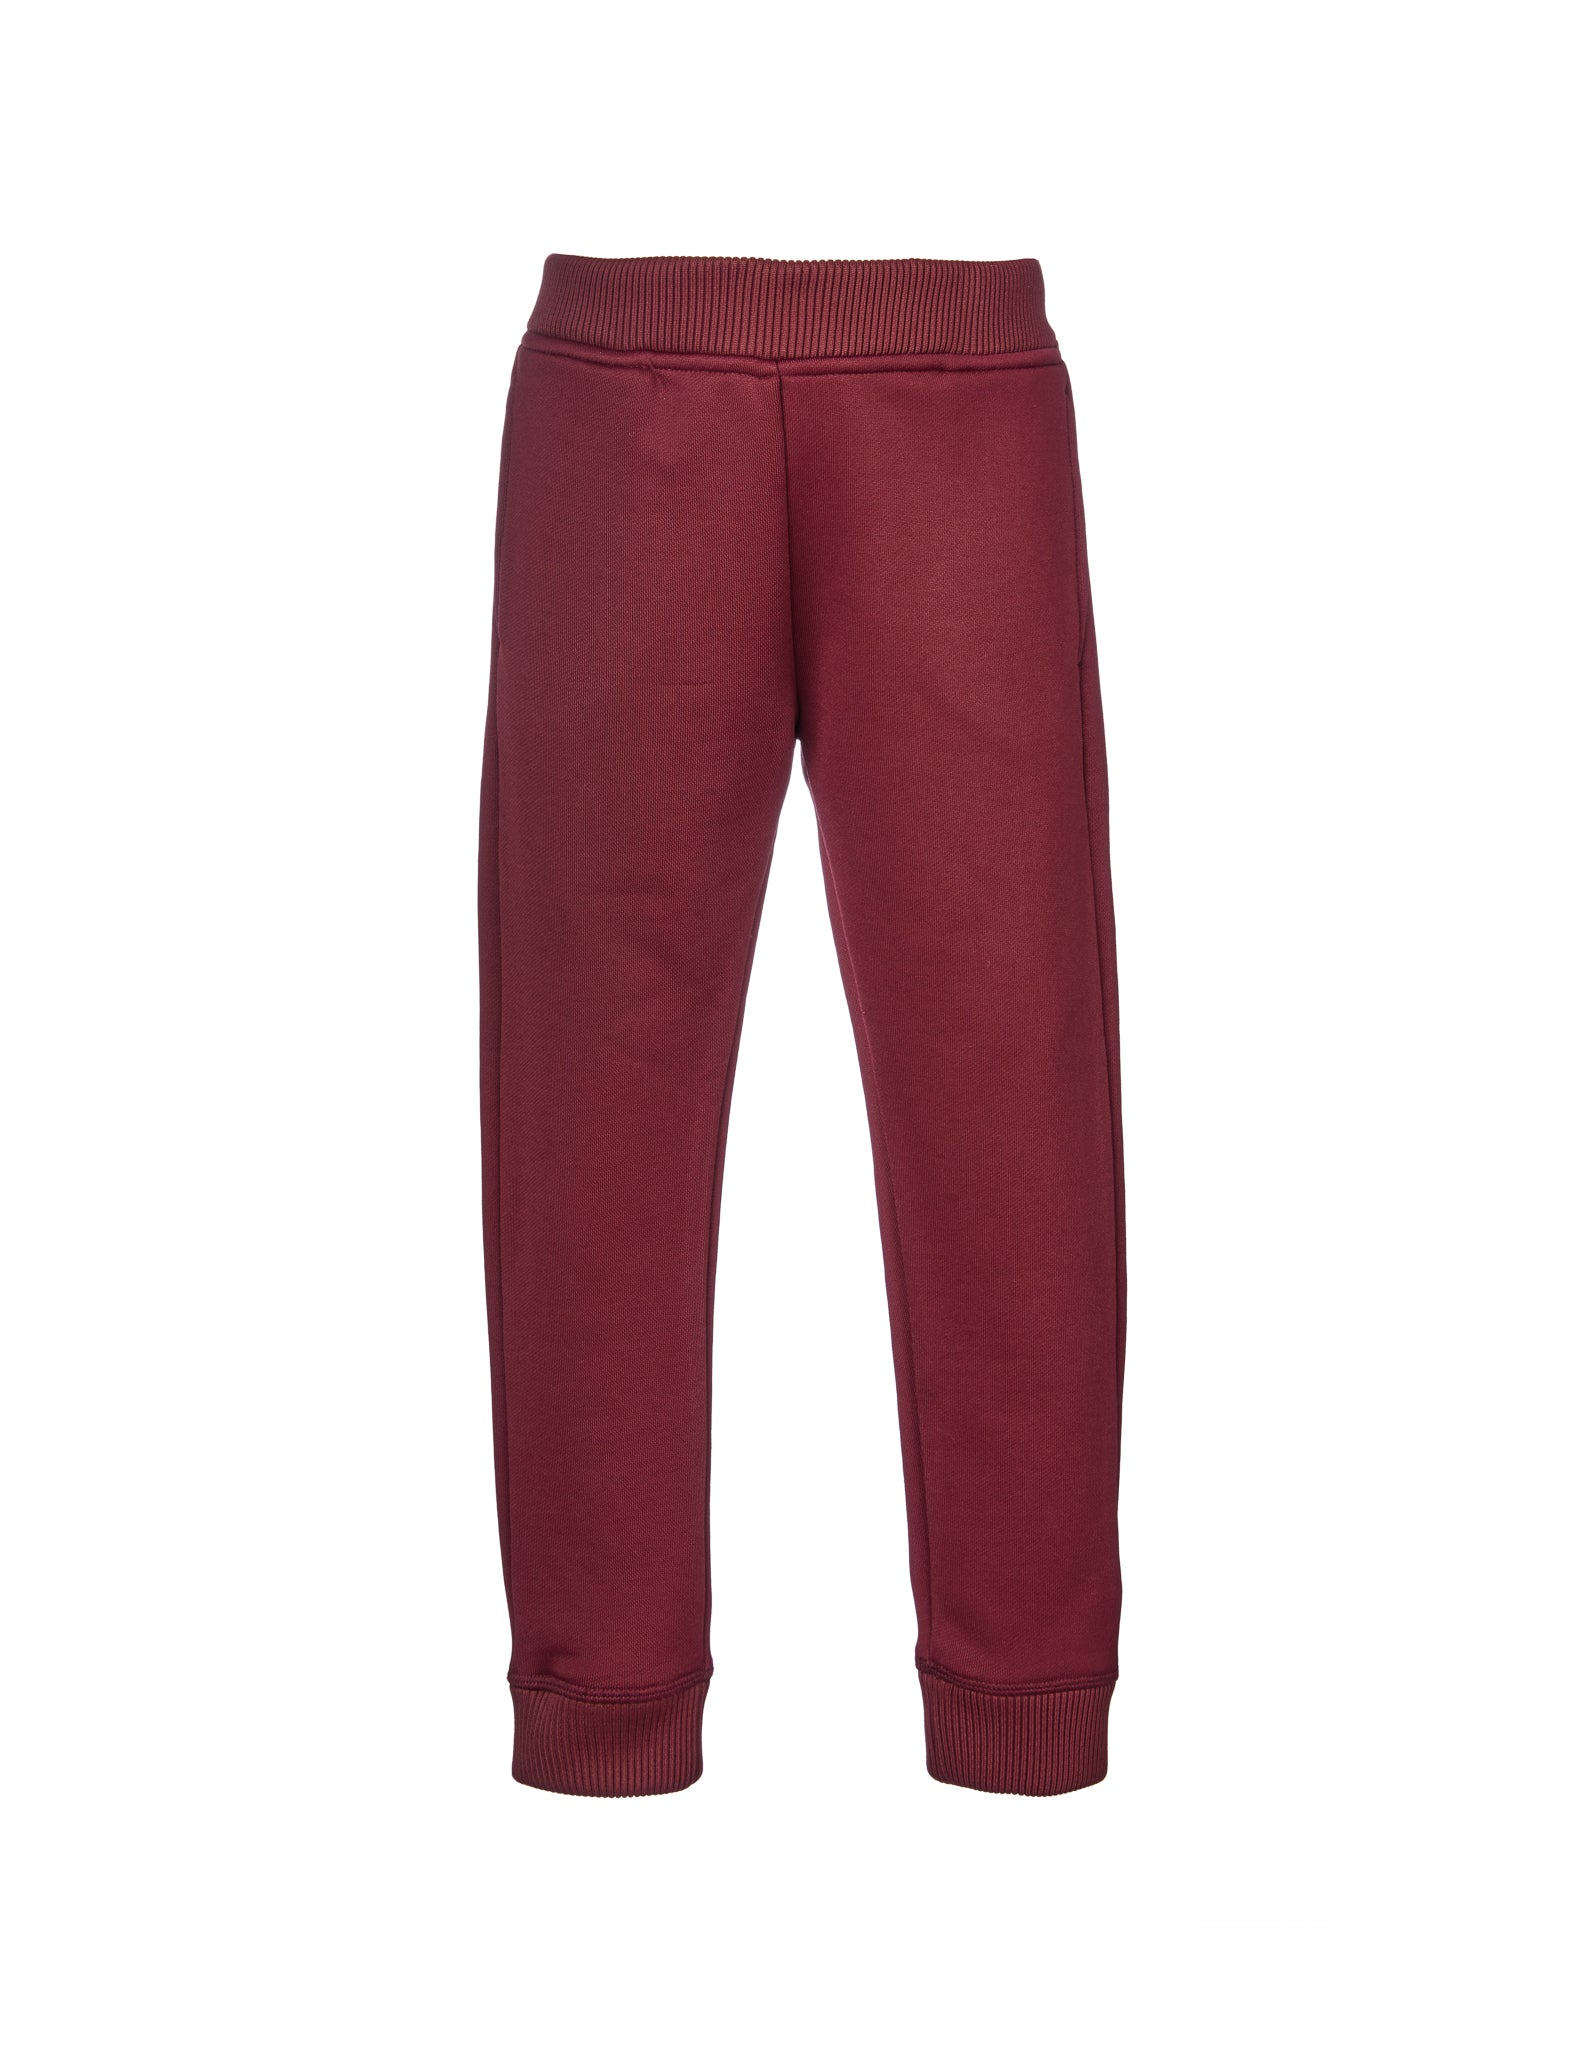 M'A KIDS ELASTIC CUFF TROUSERS IN BURGUNDY